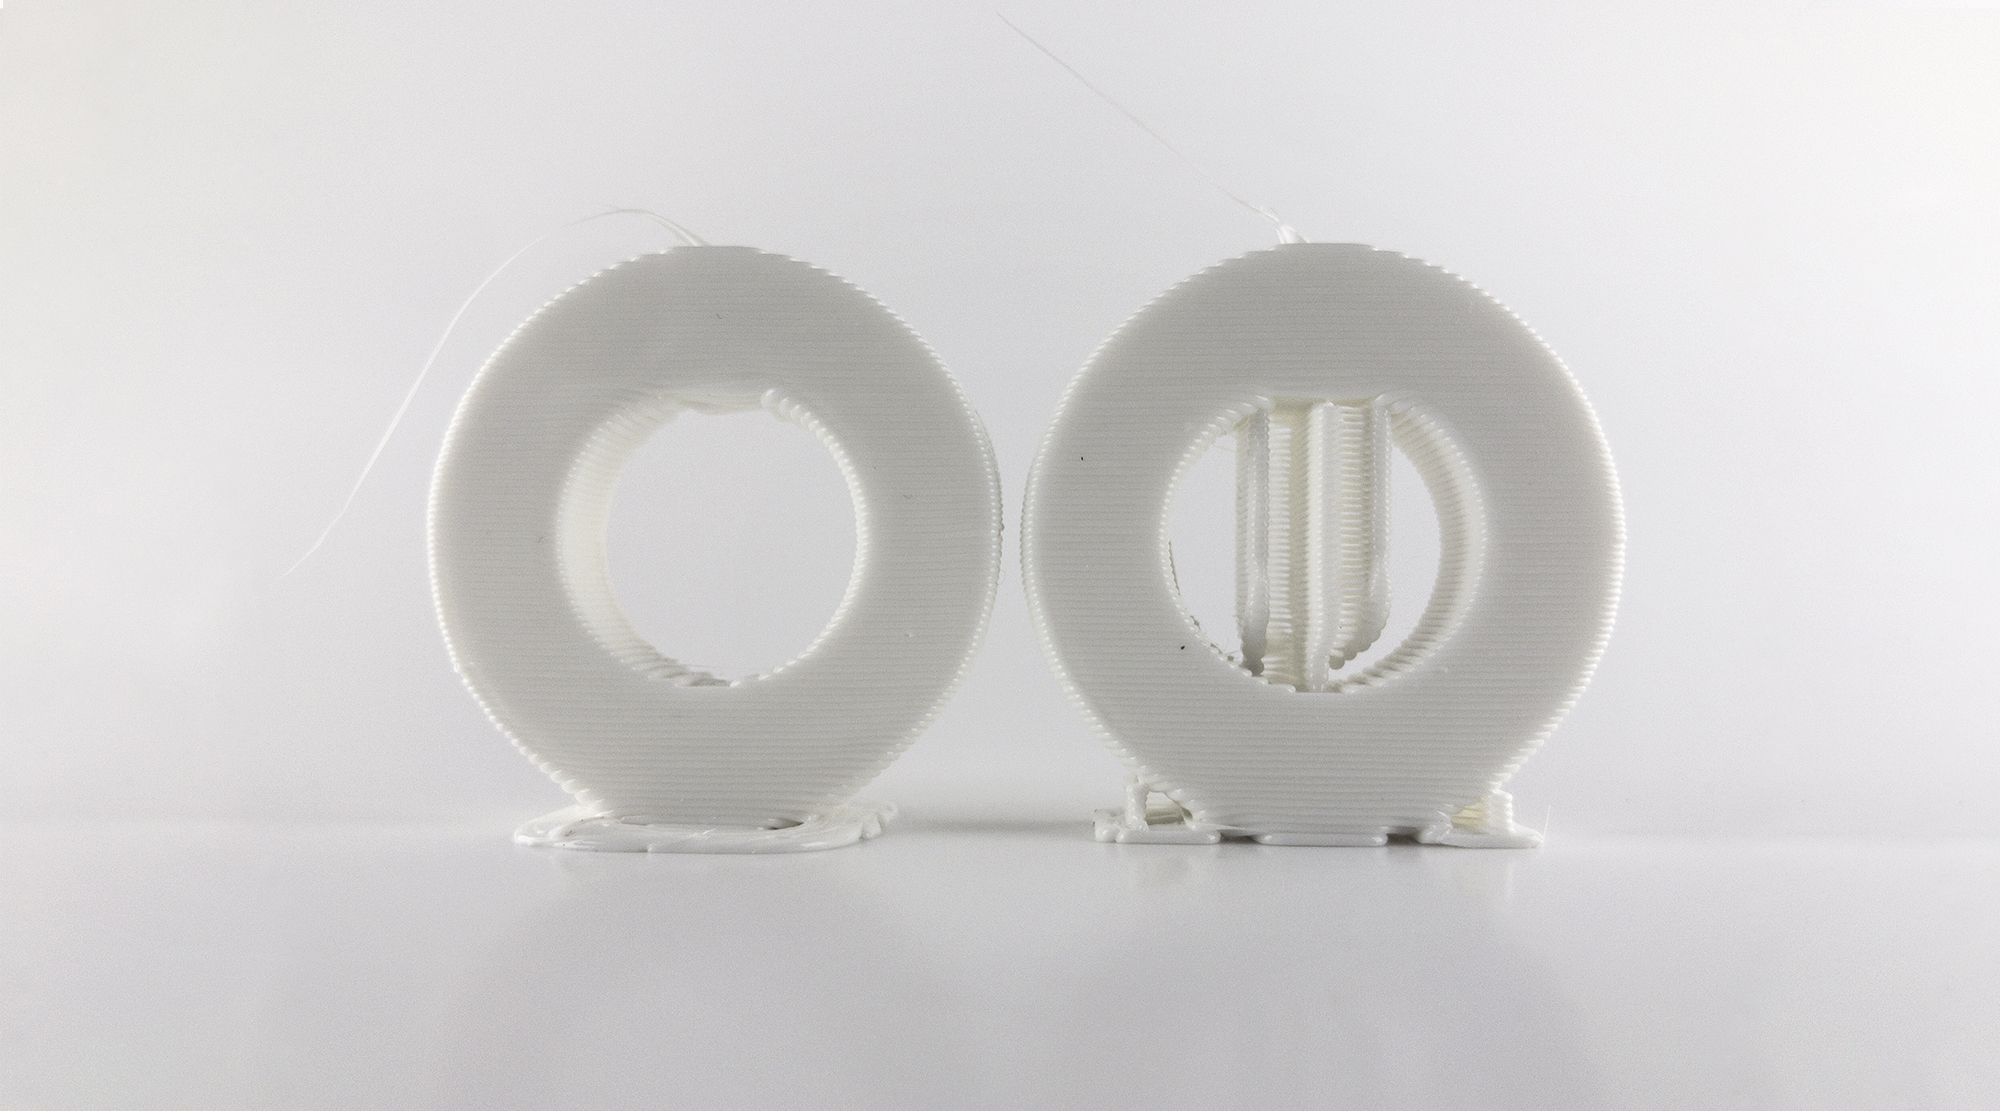 Two 'O'-shaped models printed without and with supports